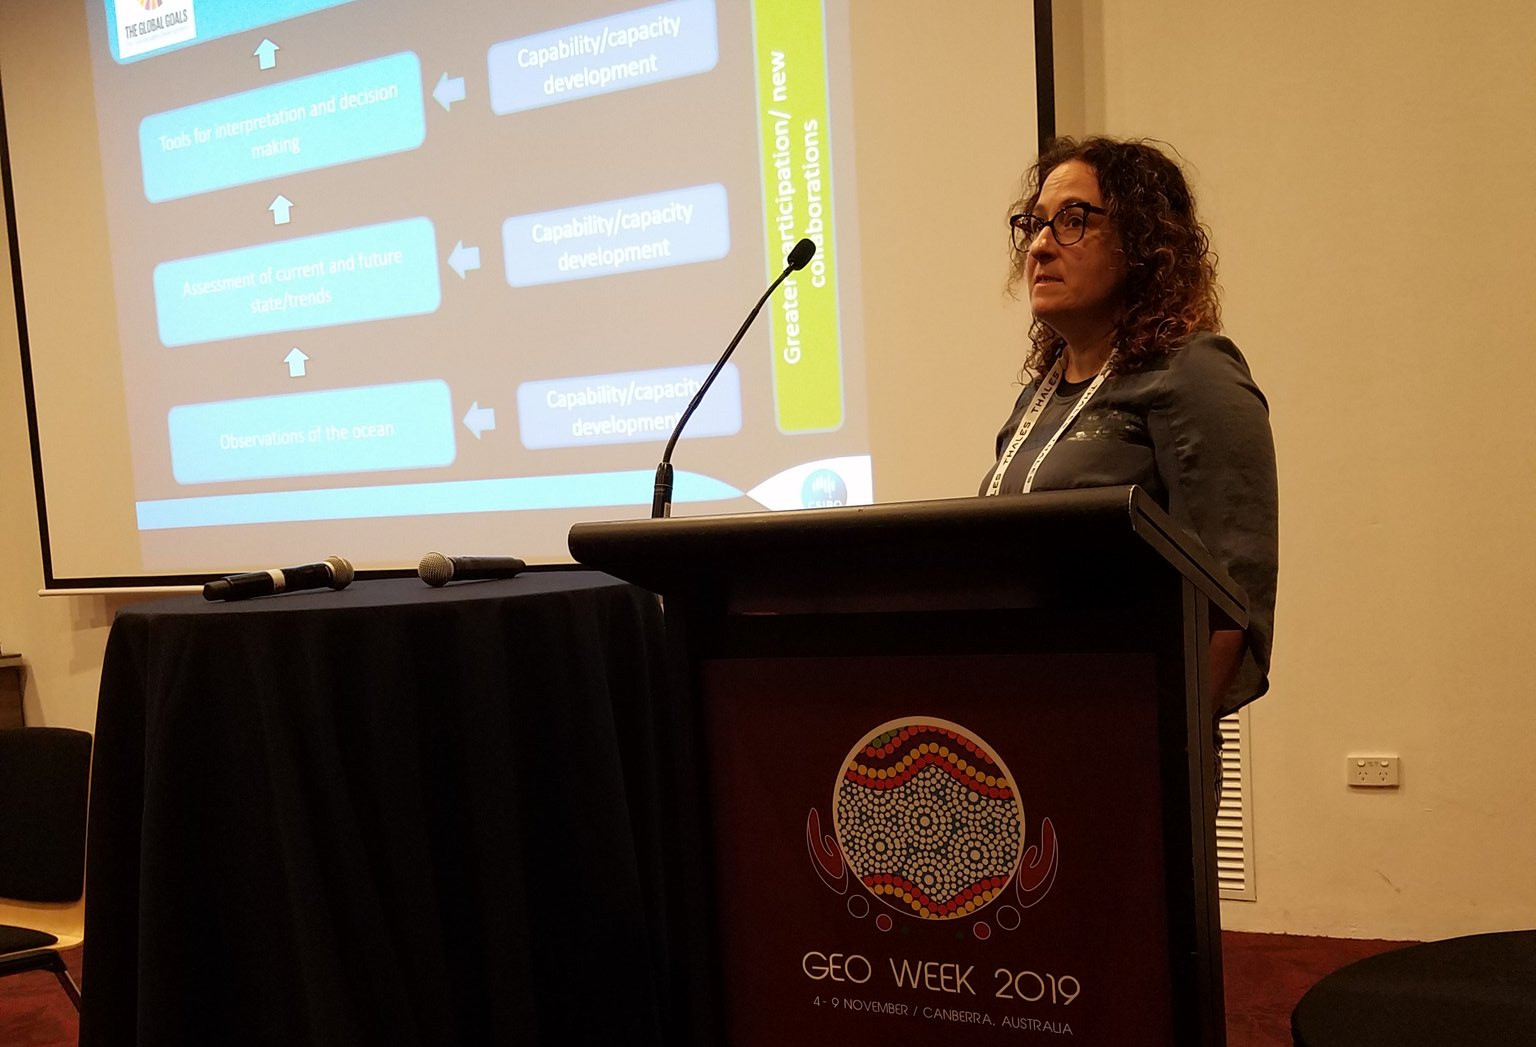 Dr. Karen Evans (CSIRO) presents the UN Decade of Ocean Science for Sustainable Development at the GEO Week 2019 side event.